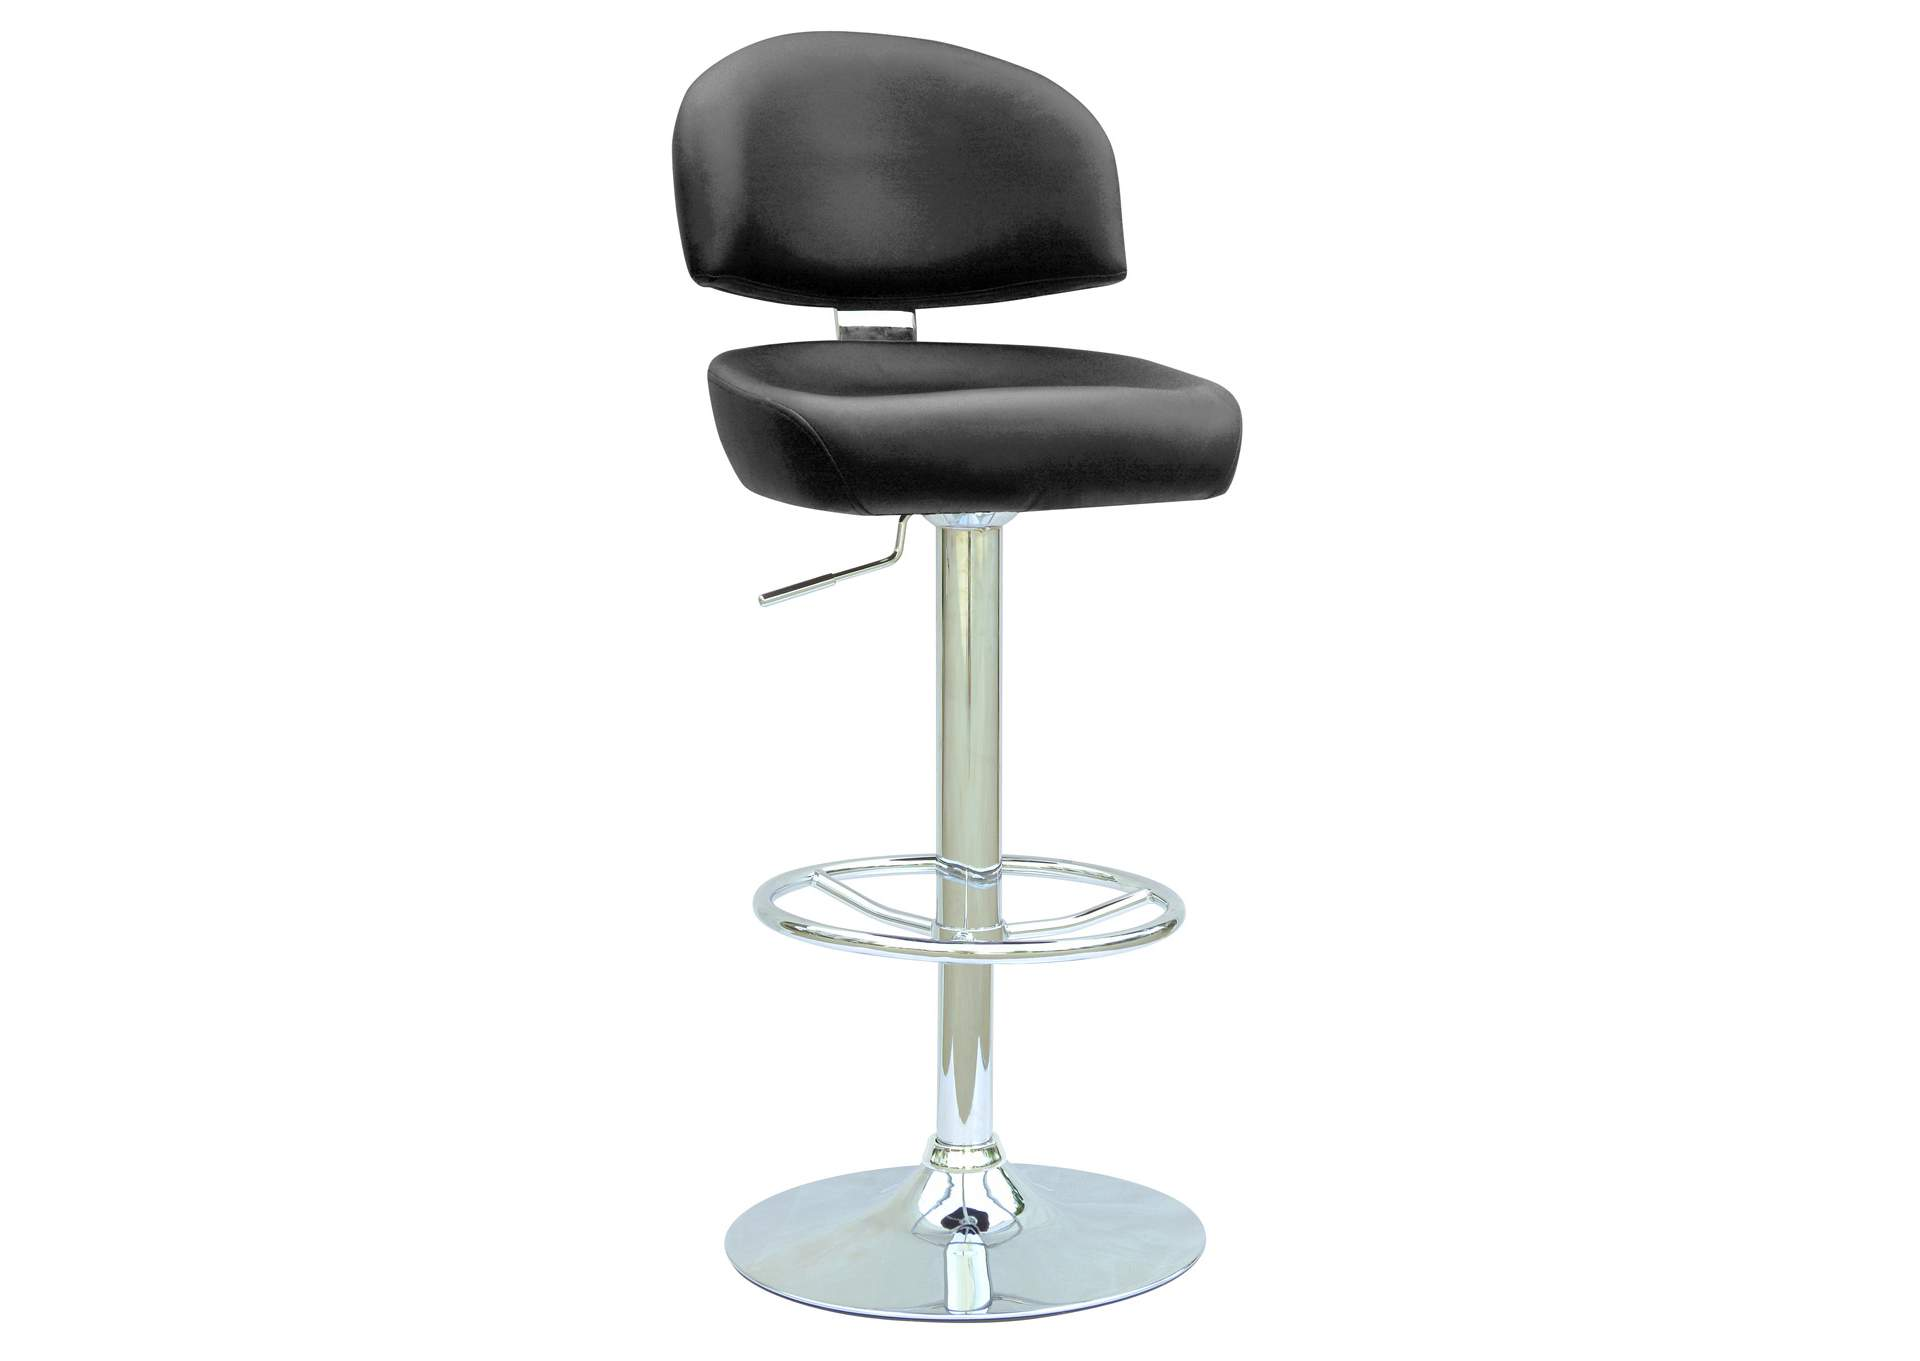 Black Pneumatic Gas Lift Adjustable Height Swivel Stool,Chintaly Imports